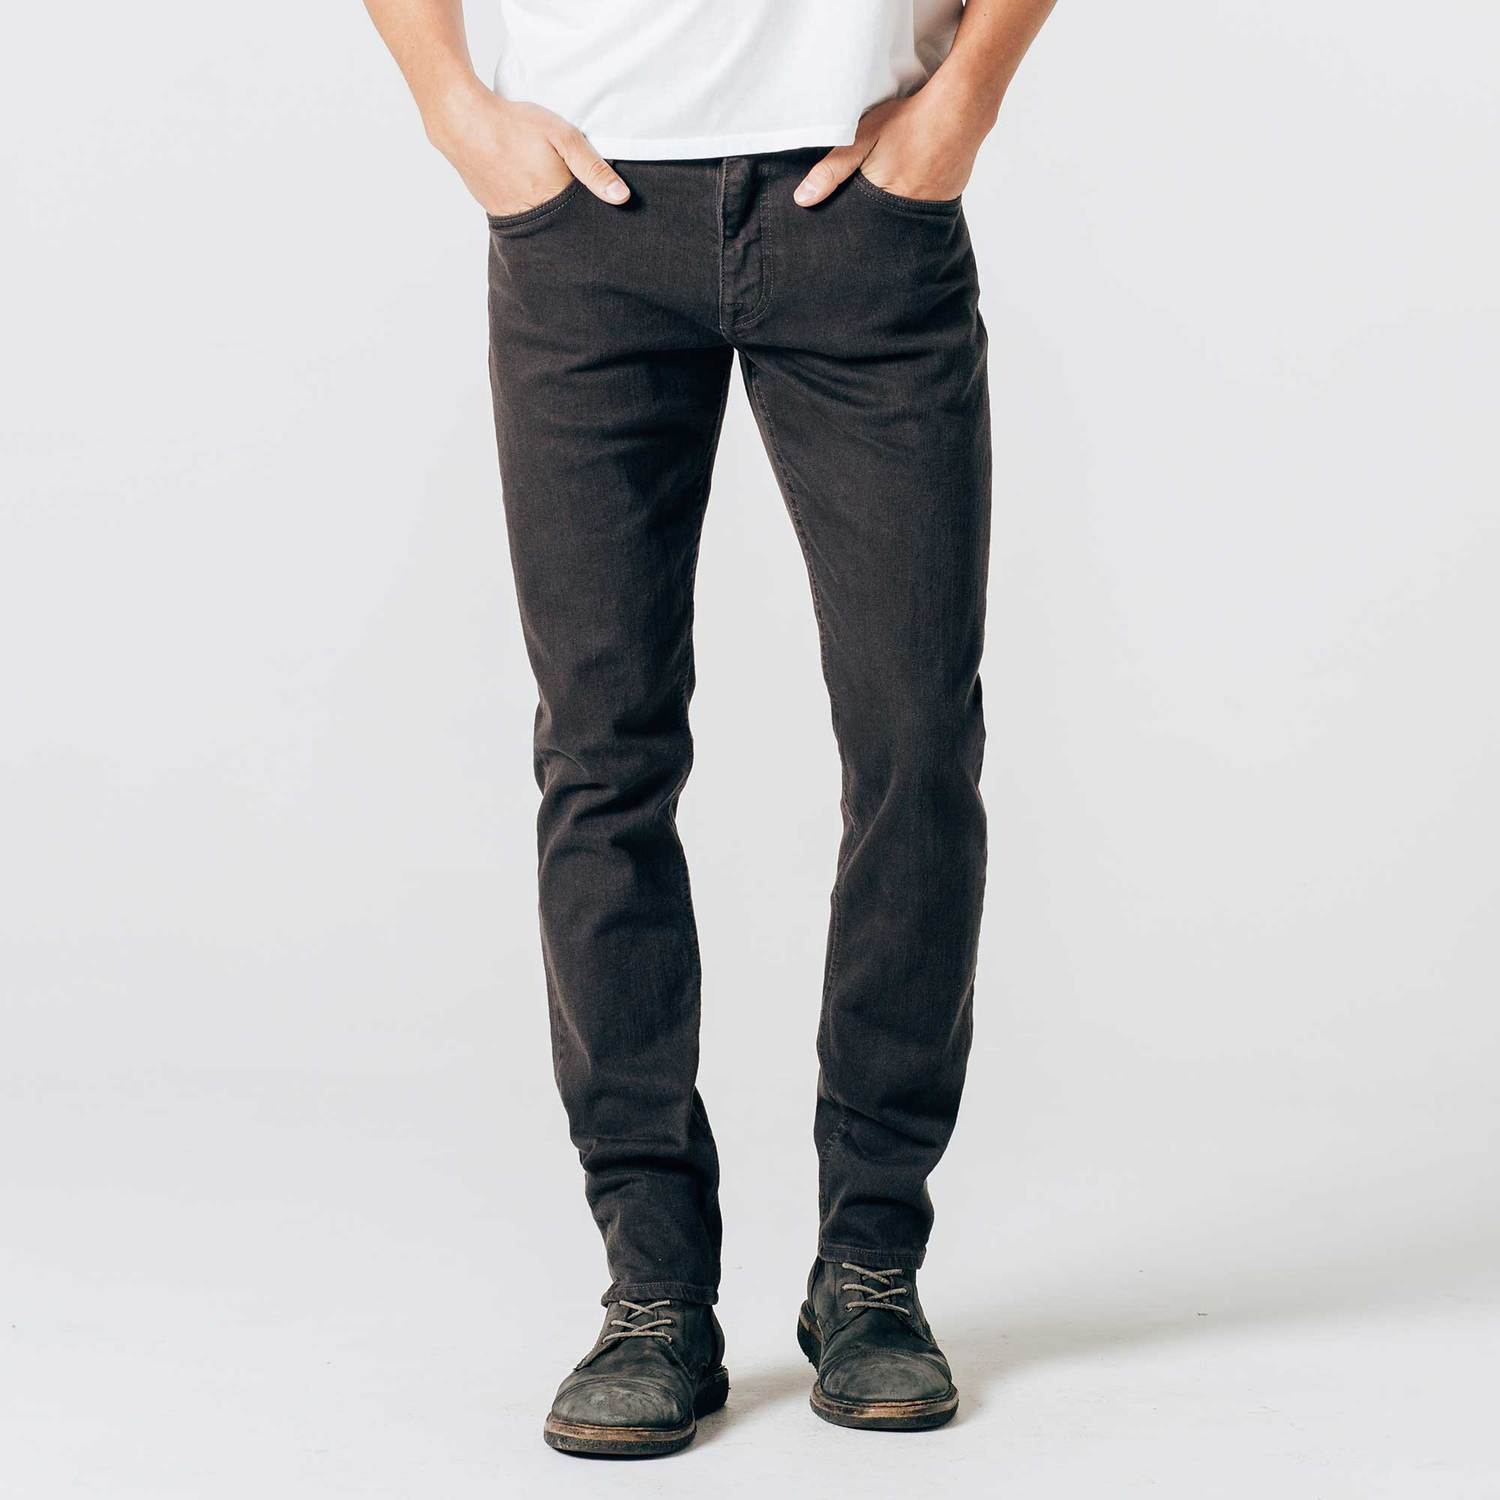 Skinny-Slim 12.25 oz. Stretch Denim Jeans in Charcoal